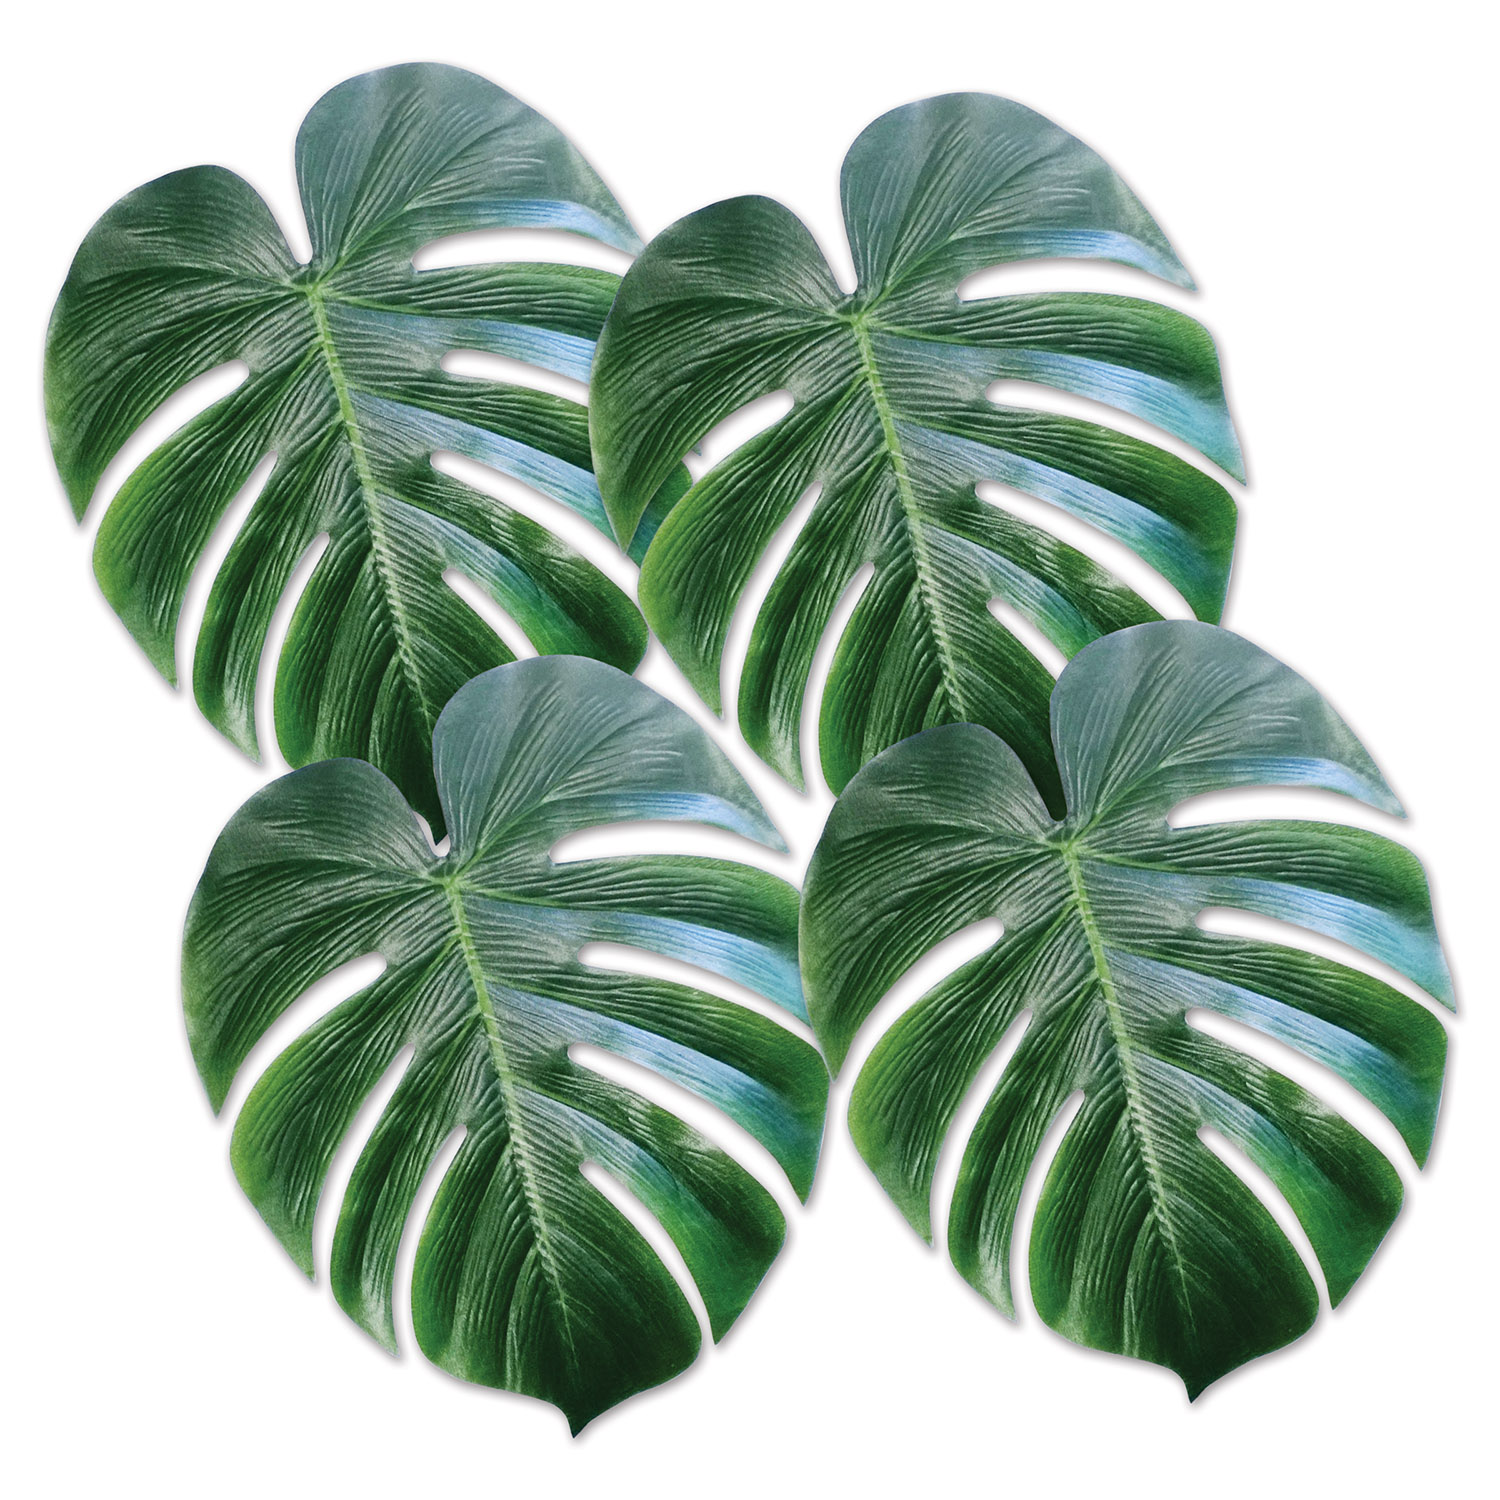 Tropical Palm Leaves (Pack of 48) Luau, tropical, hawaiian, hula, plam tree, leaves